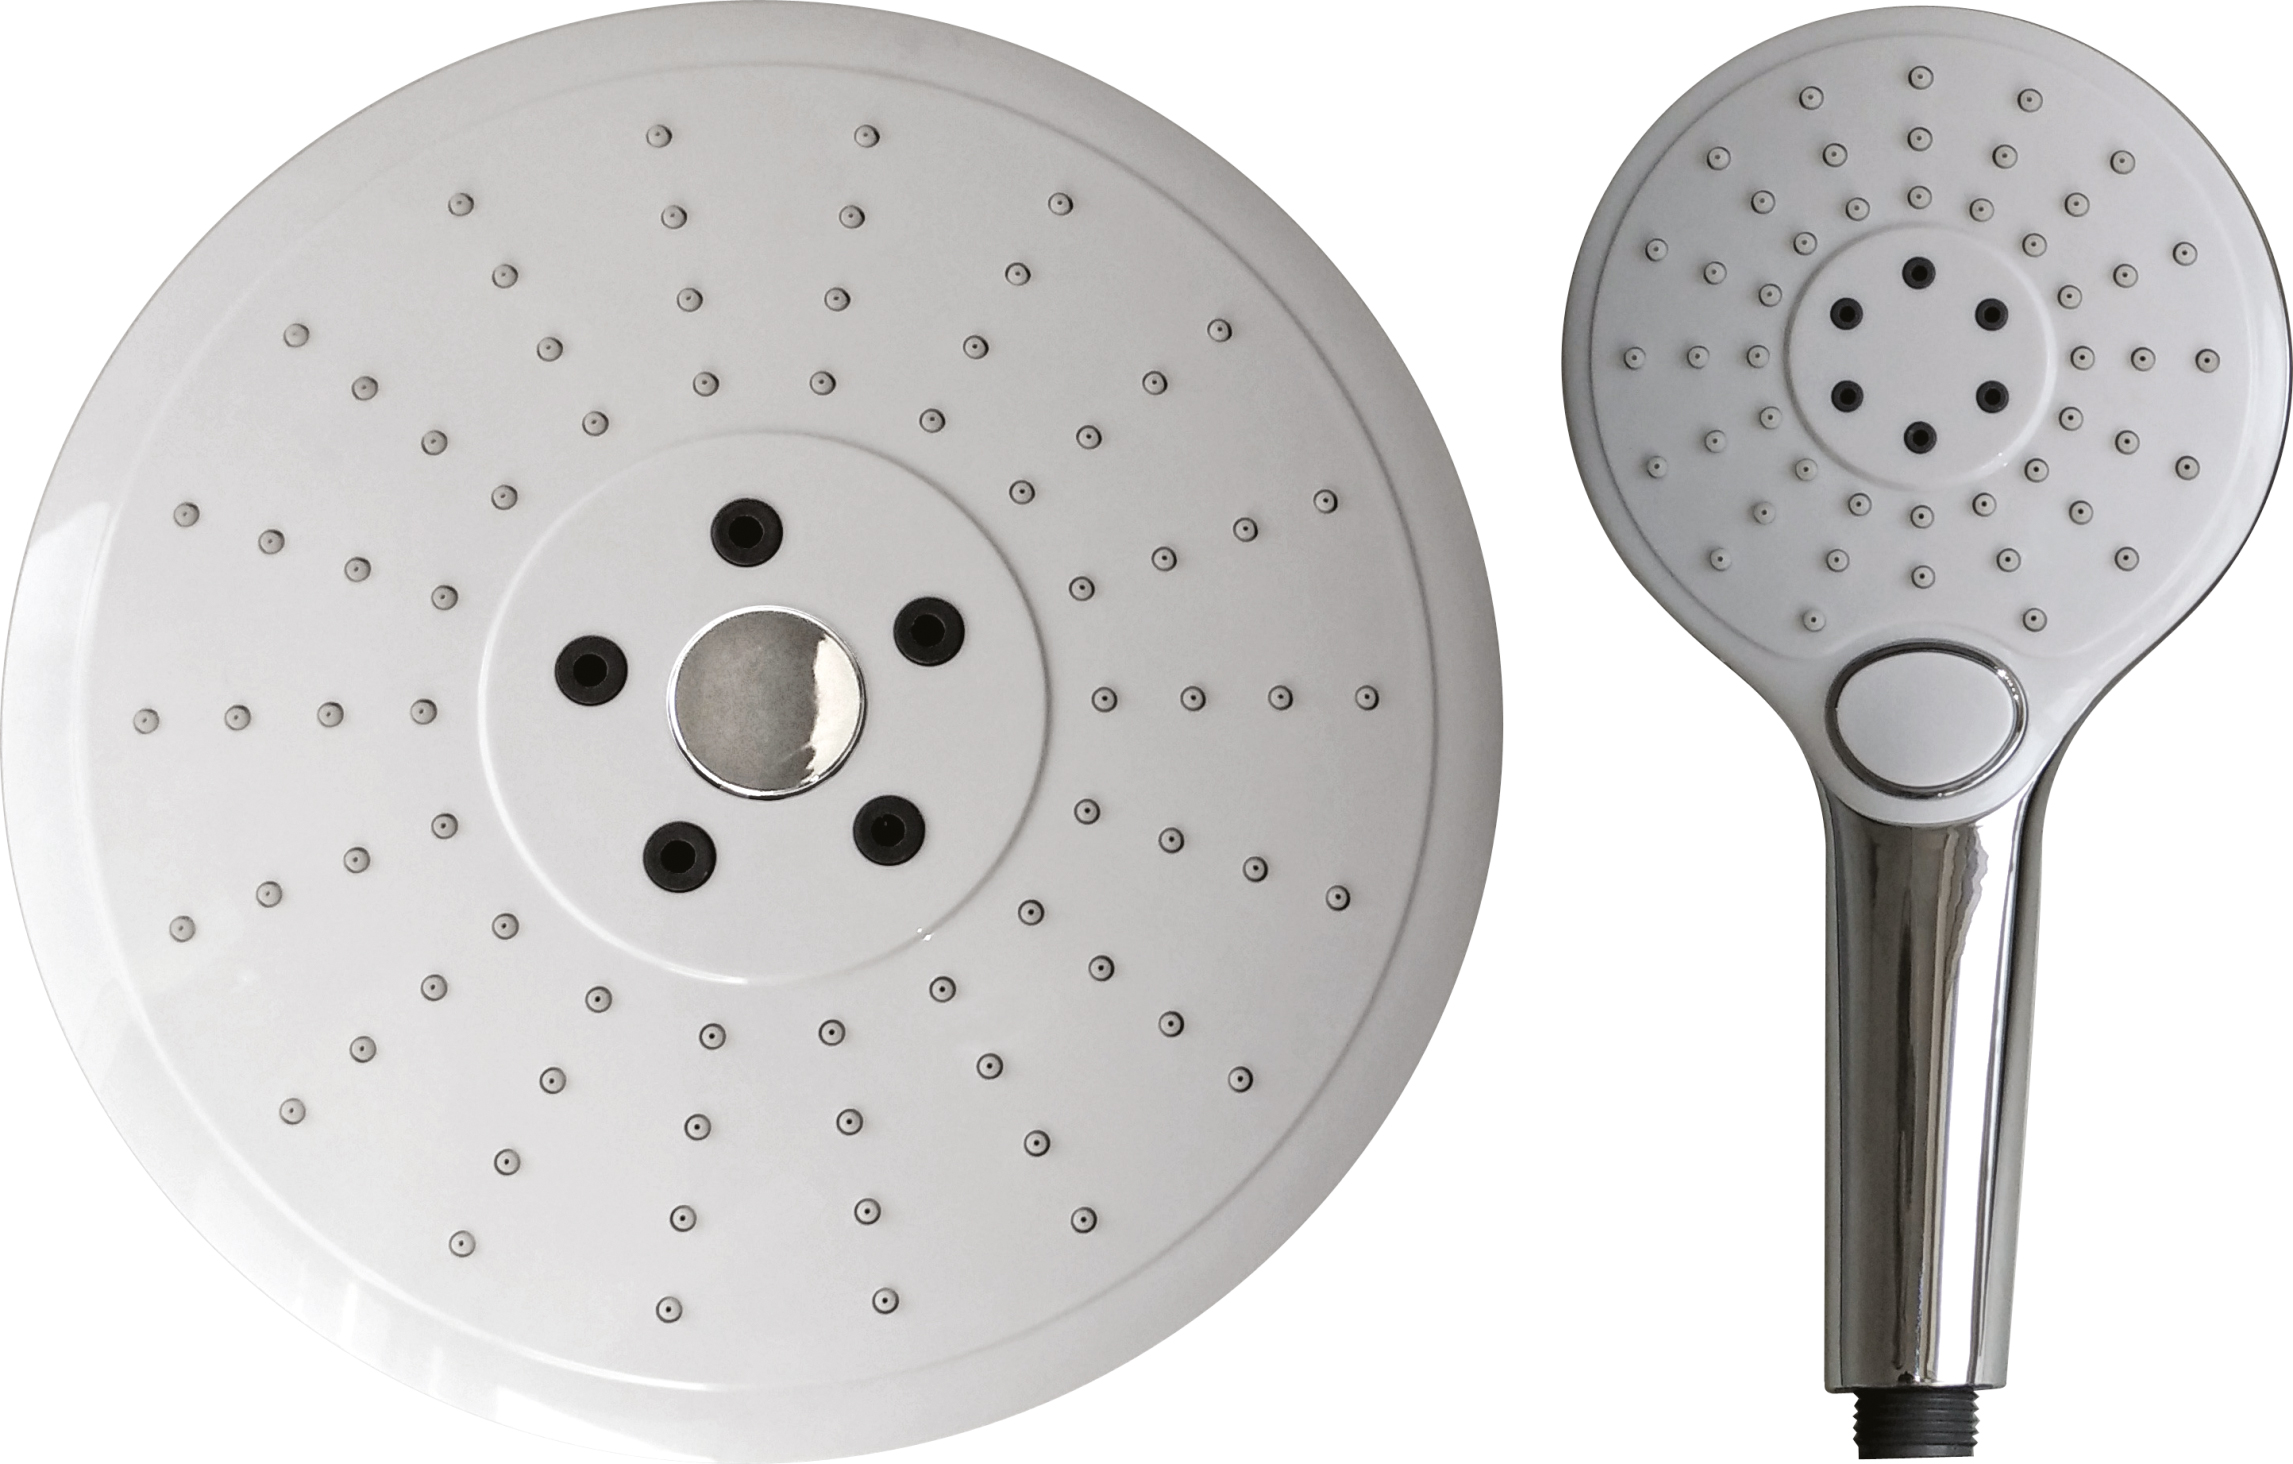 Jetta X Shower Head Combo with Hand Shower 2 Way Shower Functionality